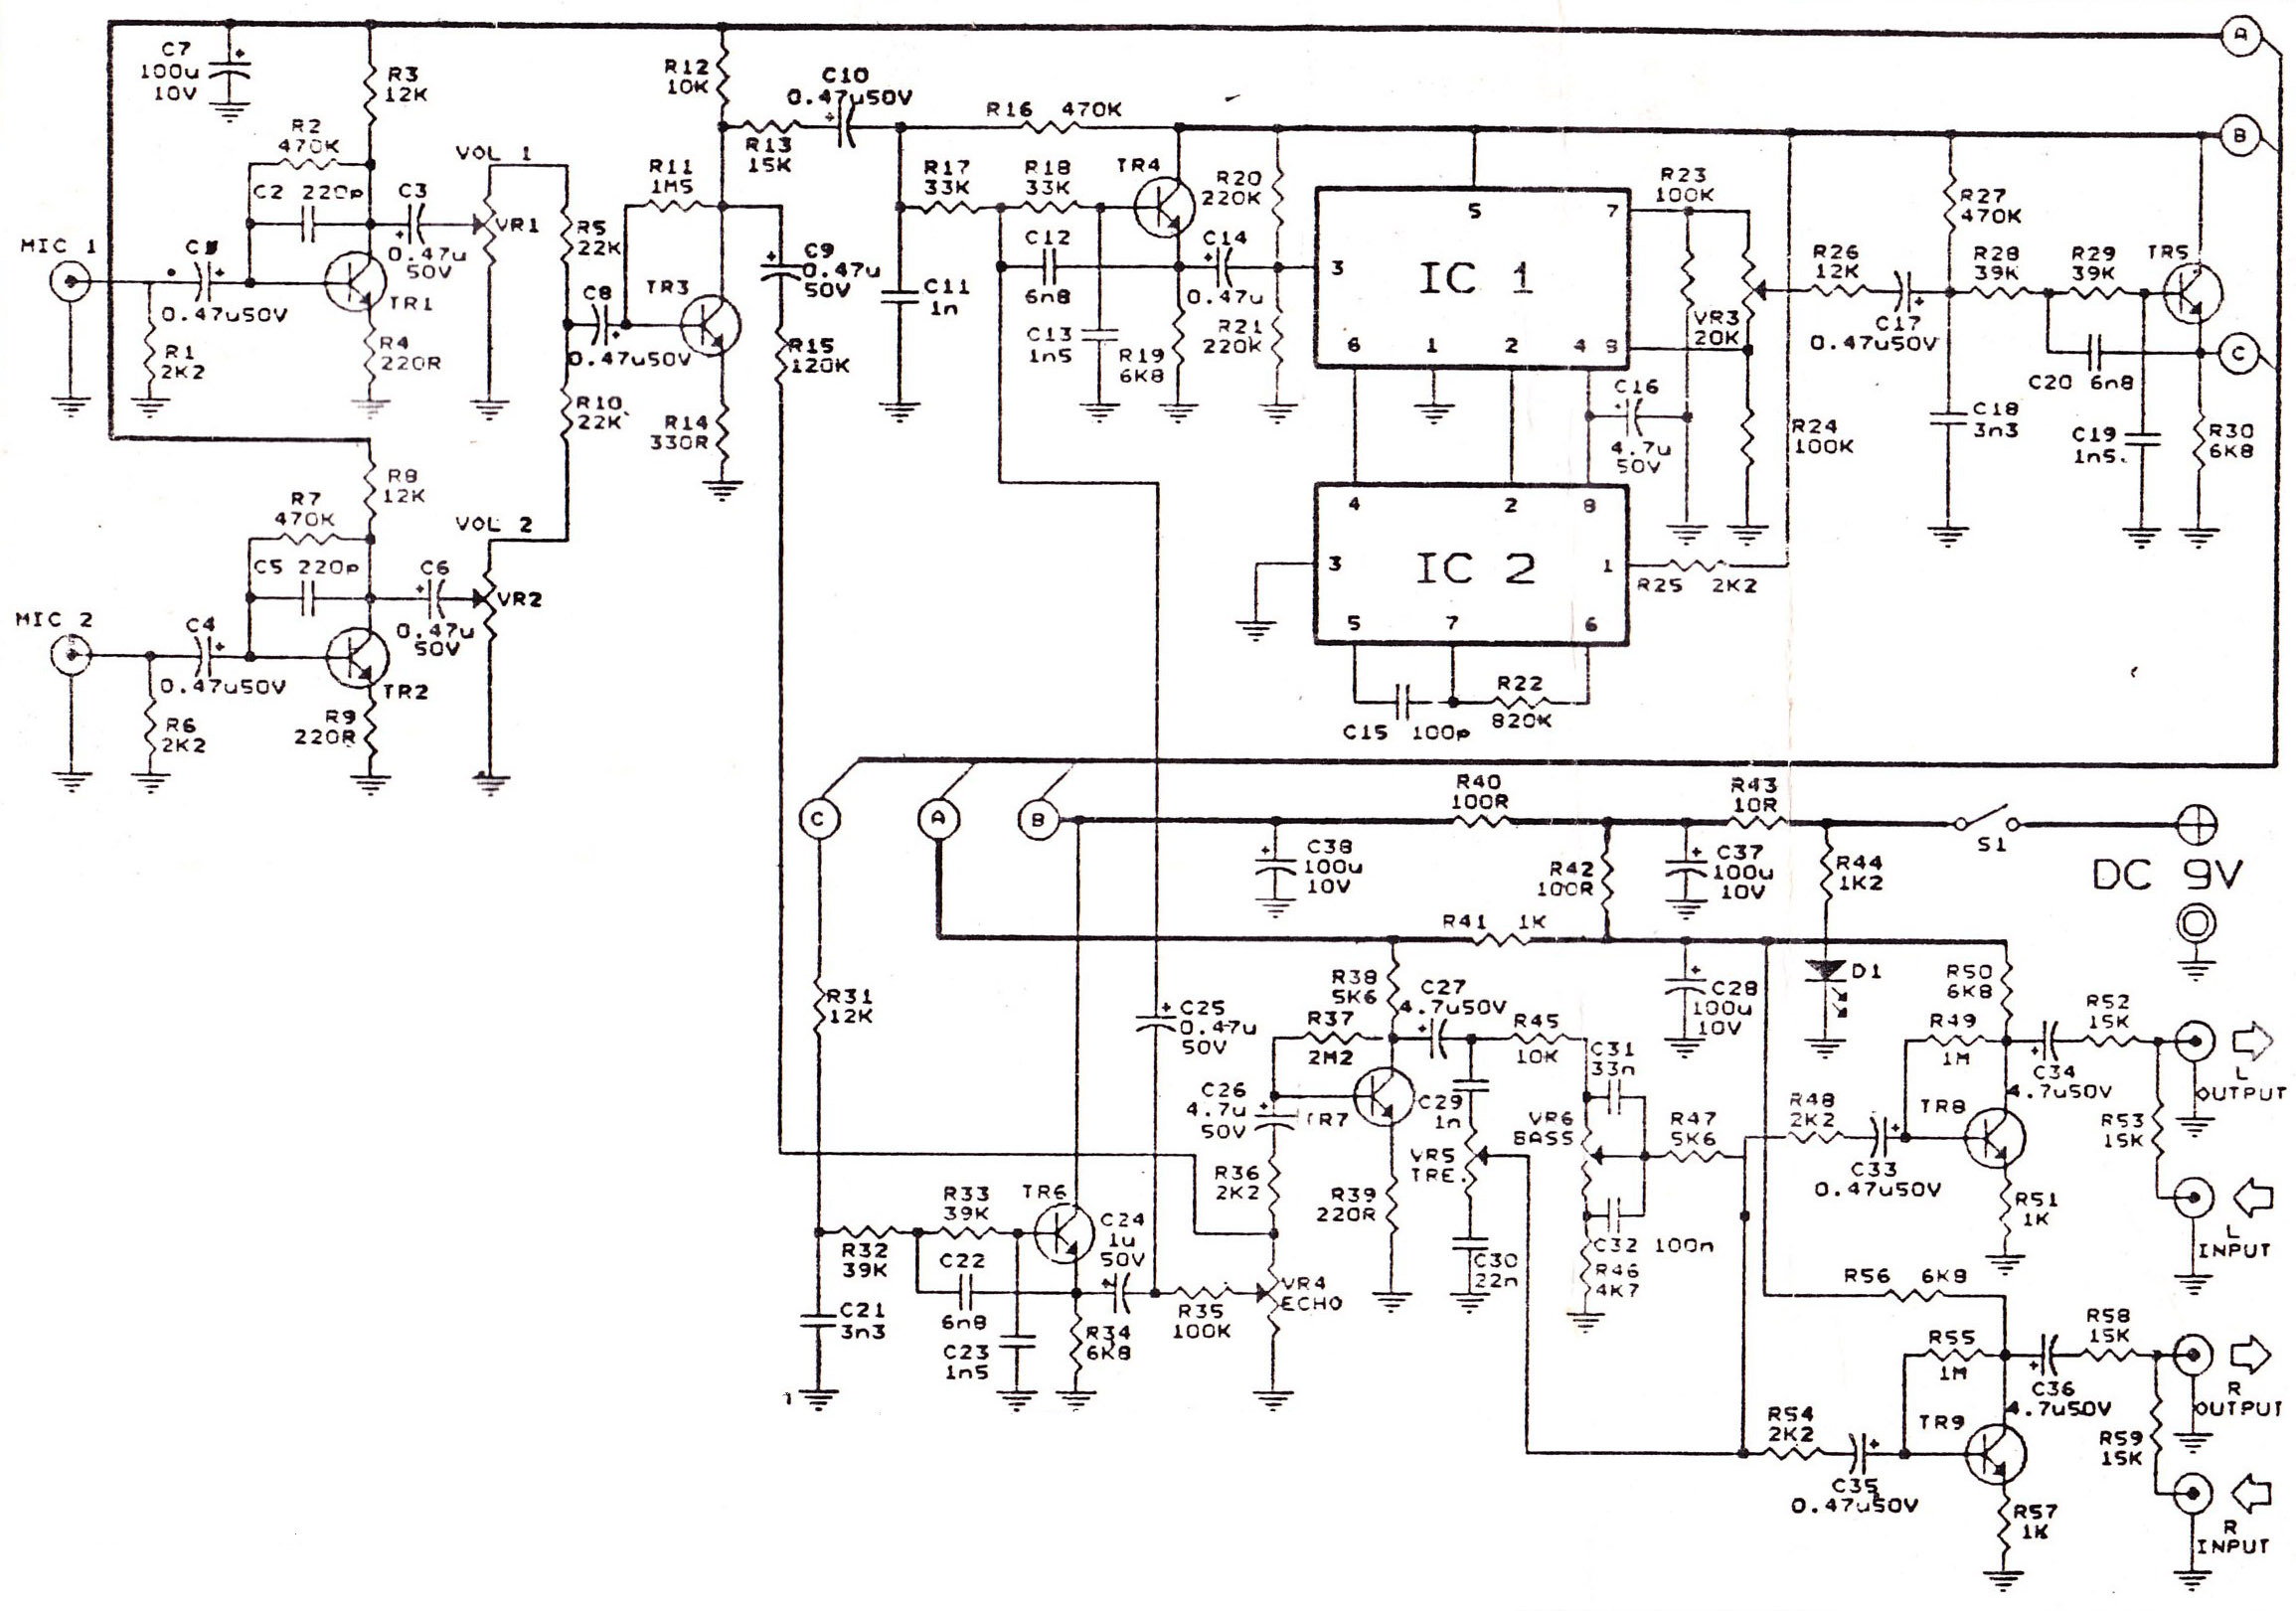 K40 Mic Wiring Diagram